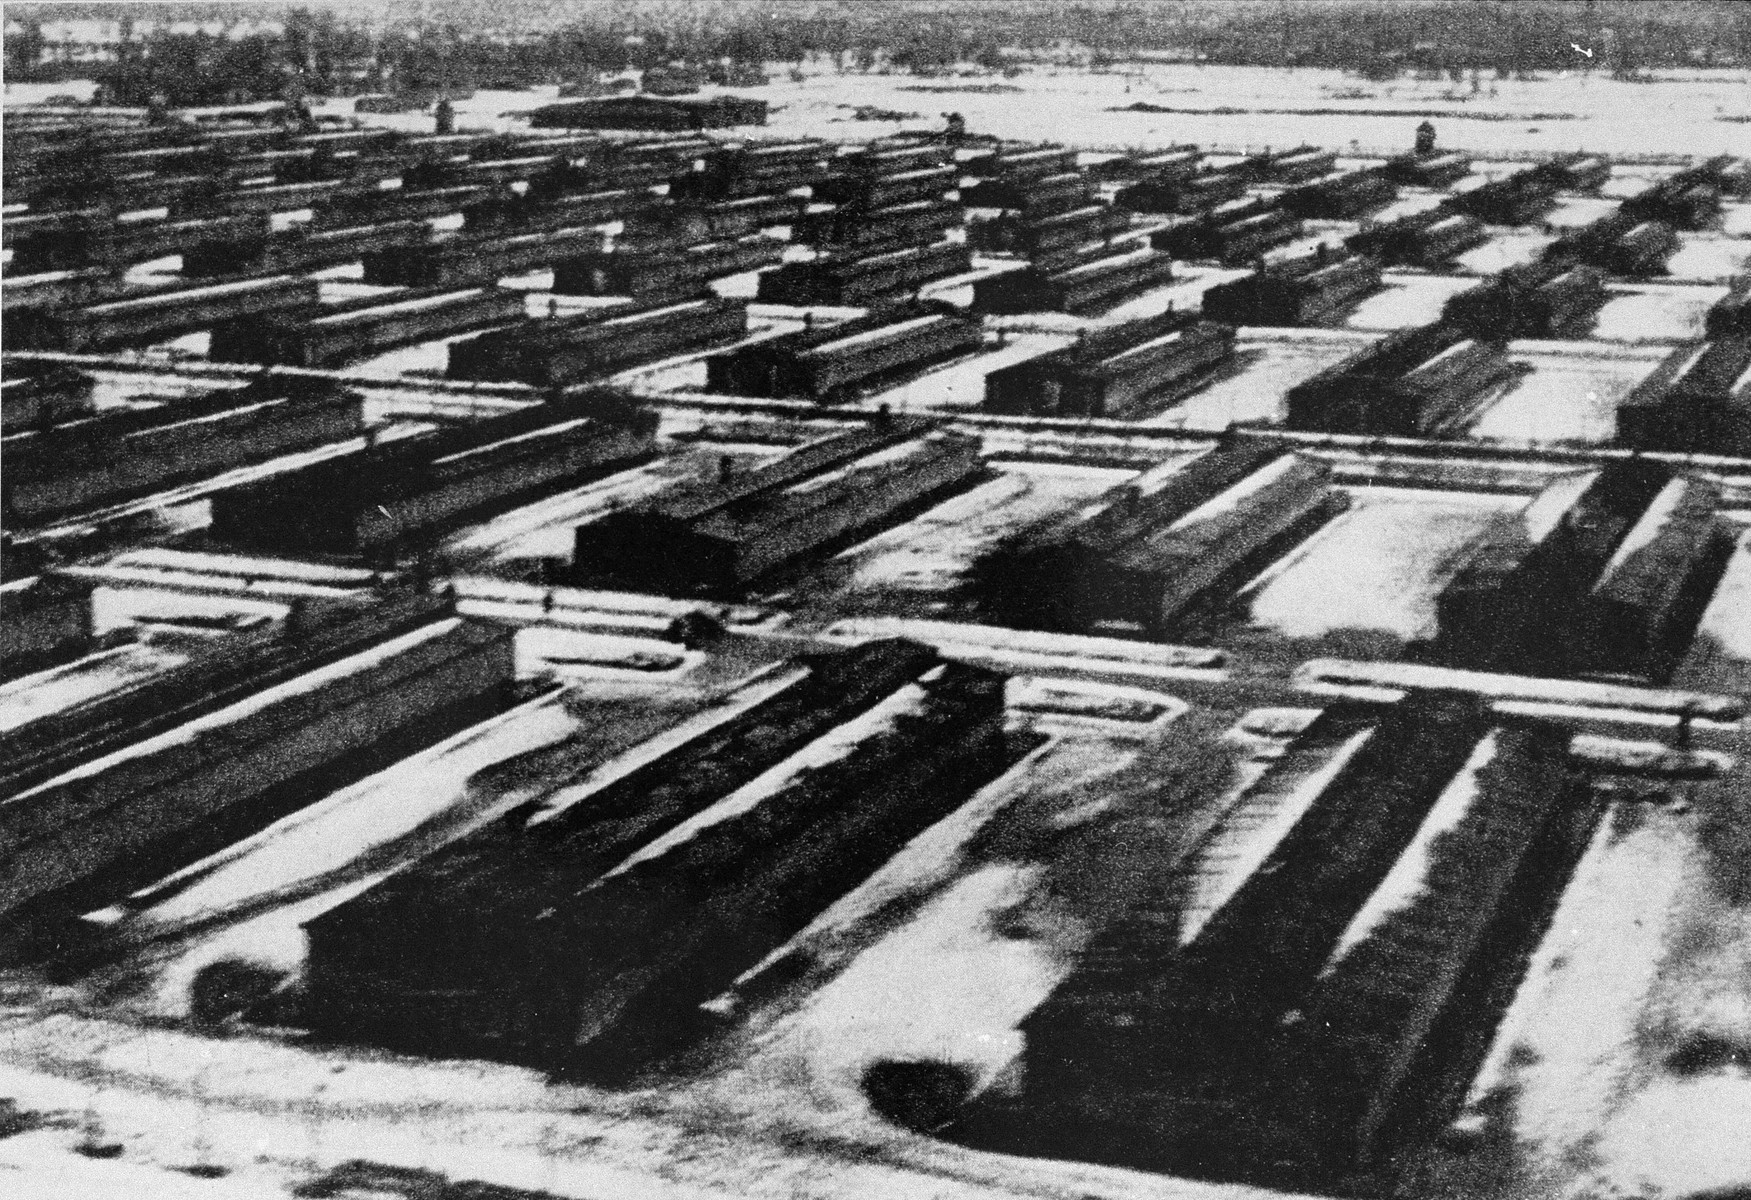 A view of the Auschwitz II camp showing the barracks of the camp.